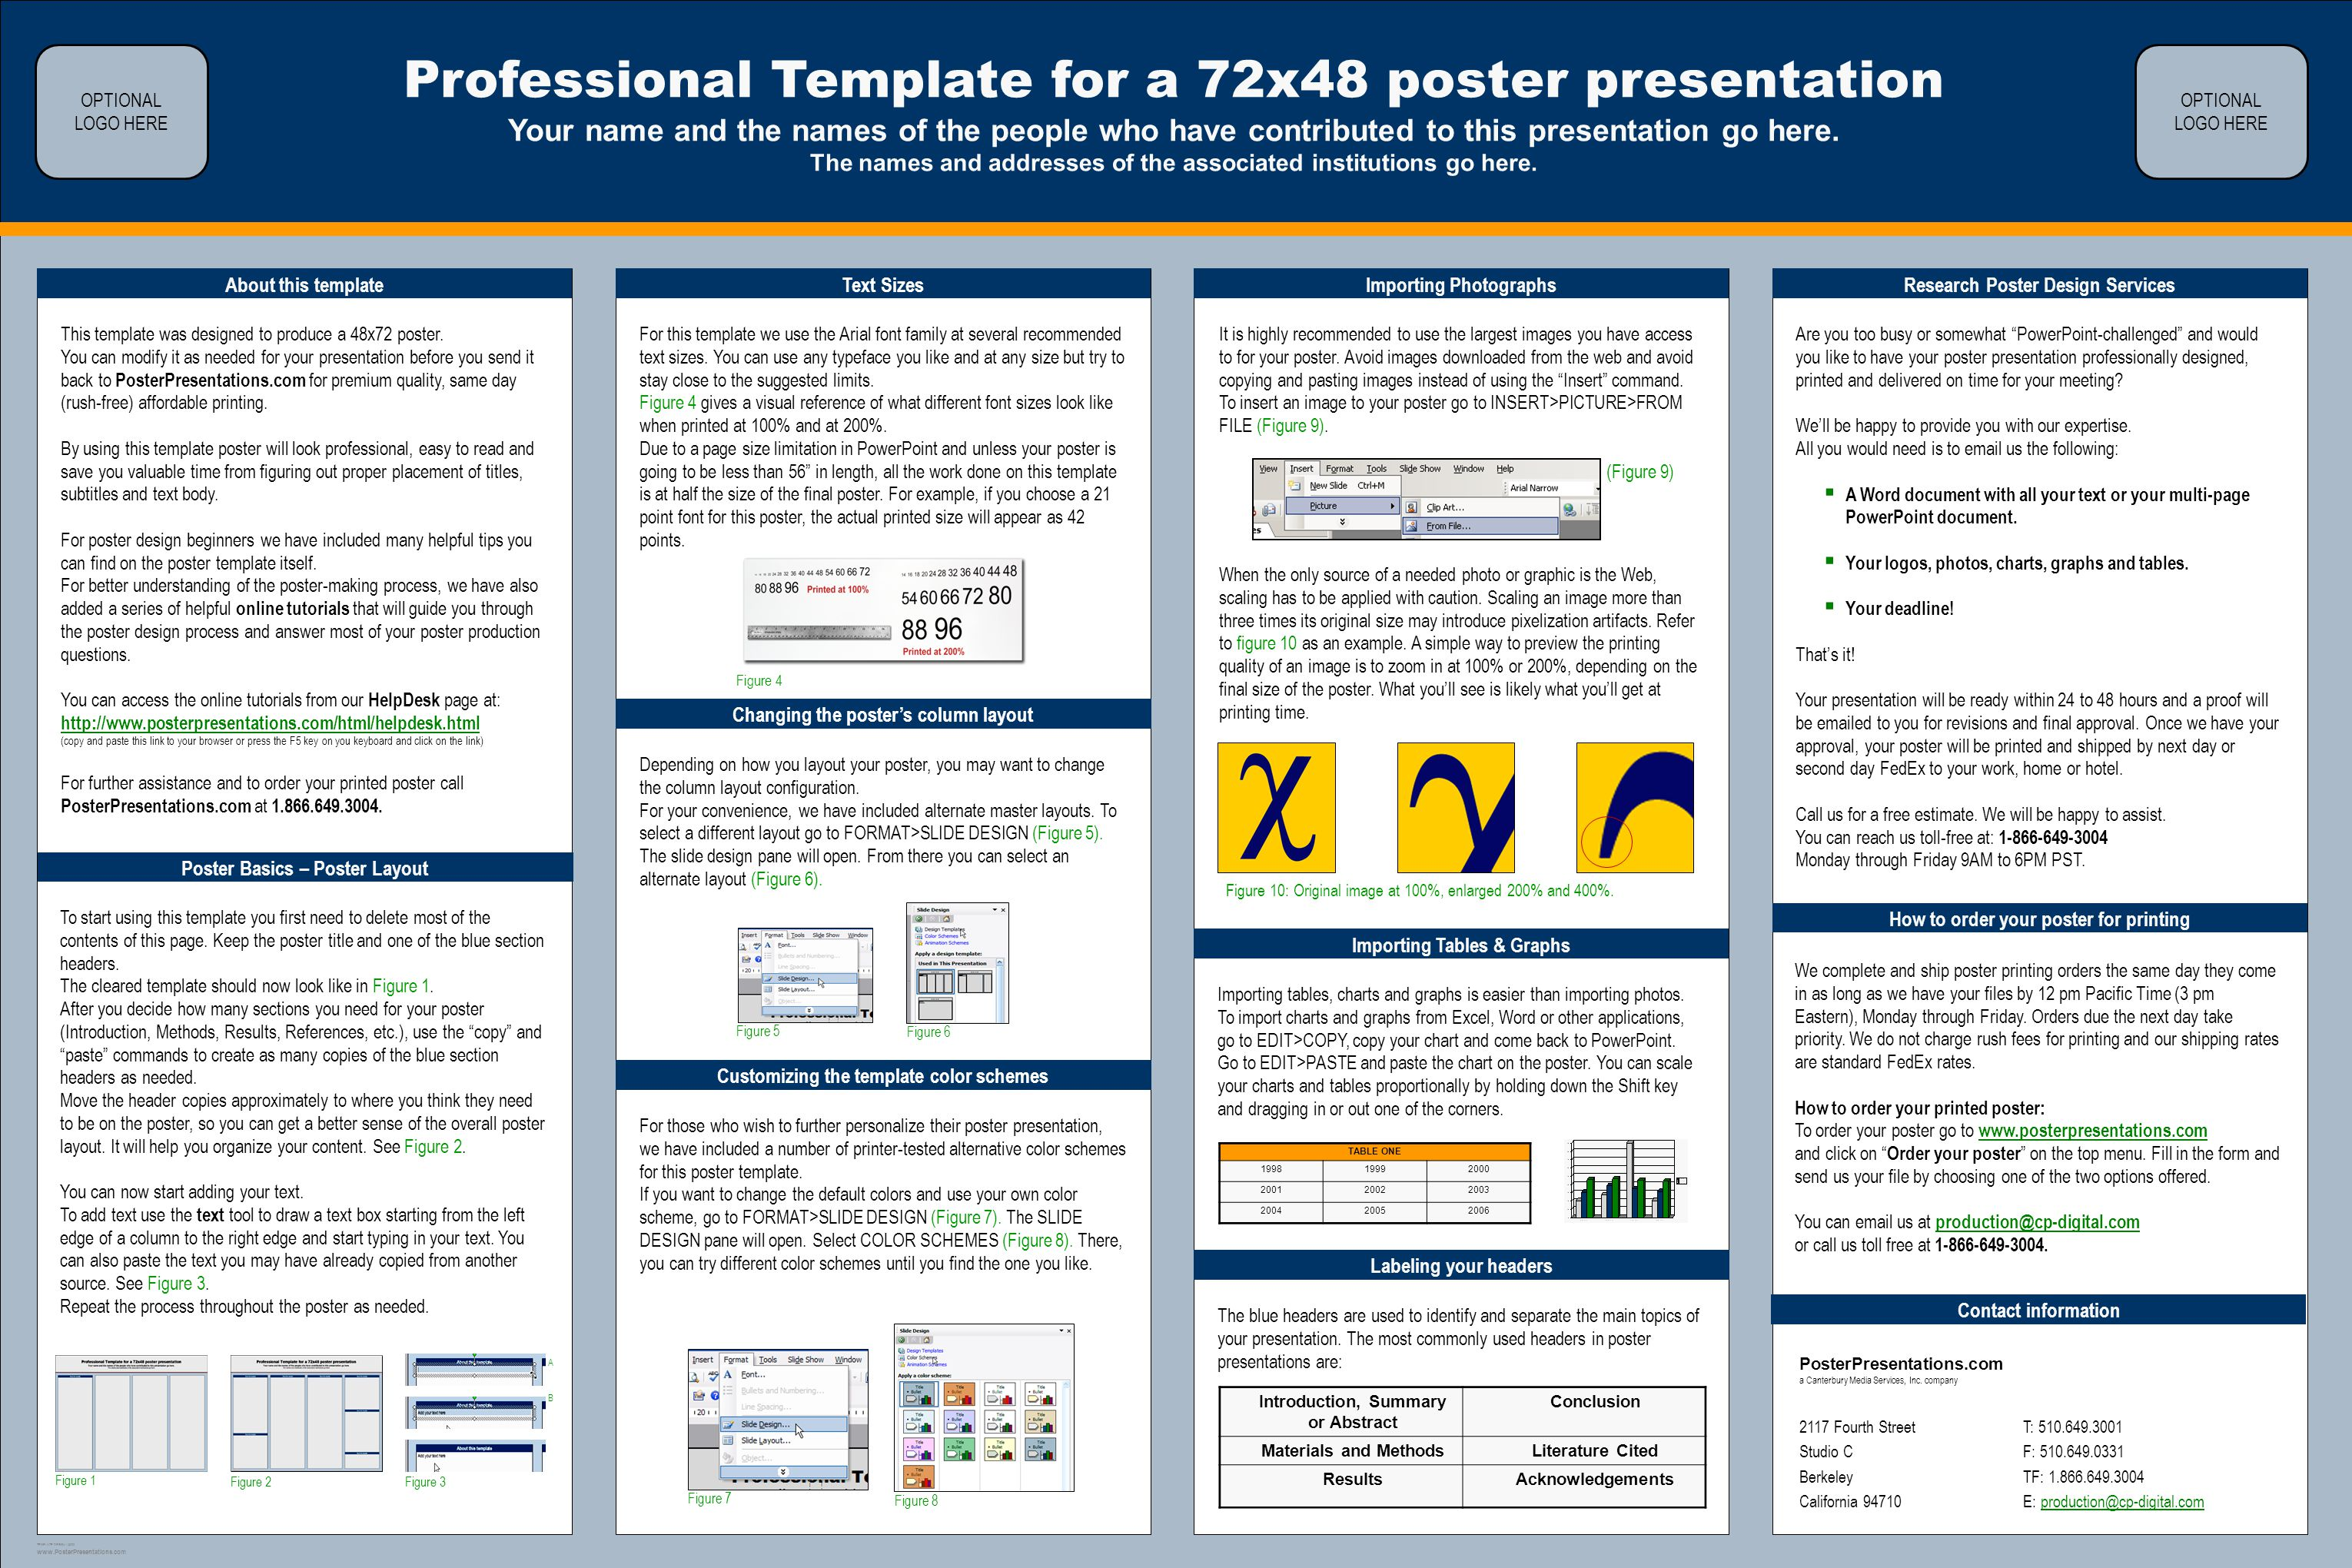 large format research poster templates wake forest - mandegar, Poster Presentation Template Iit, Presentation templates